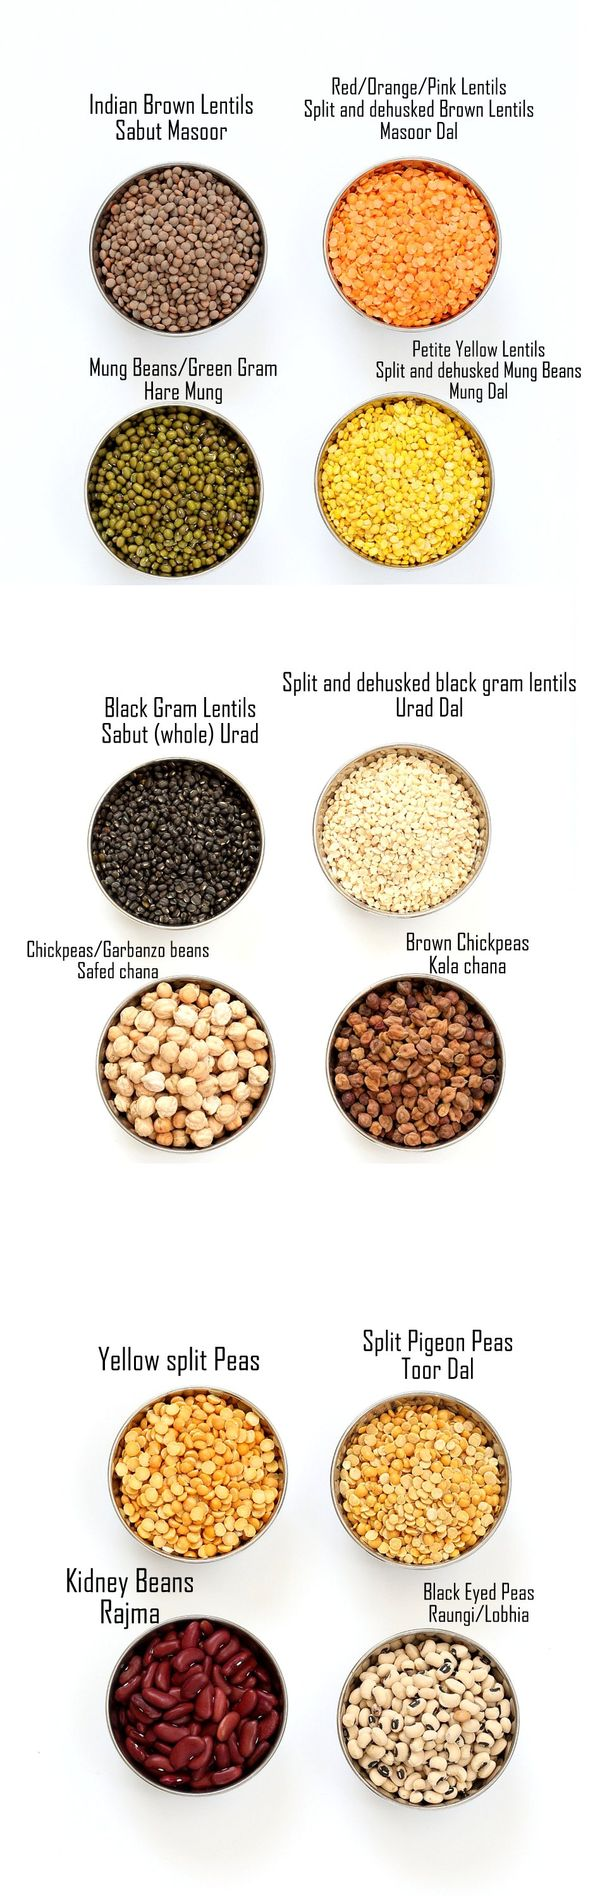 Indian Dals Names Dals And Legumes Indian Dal Names In English